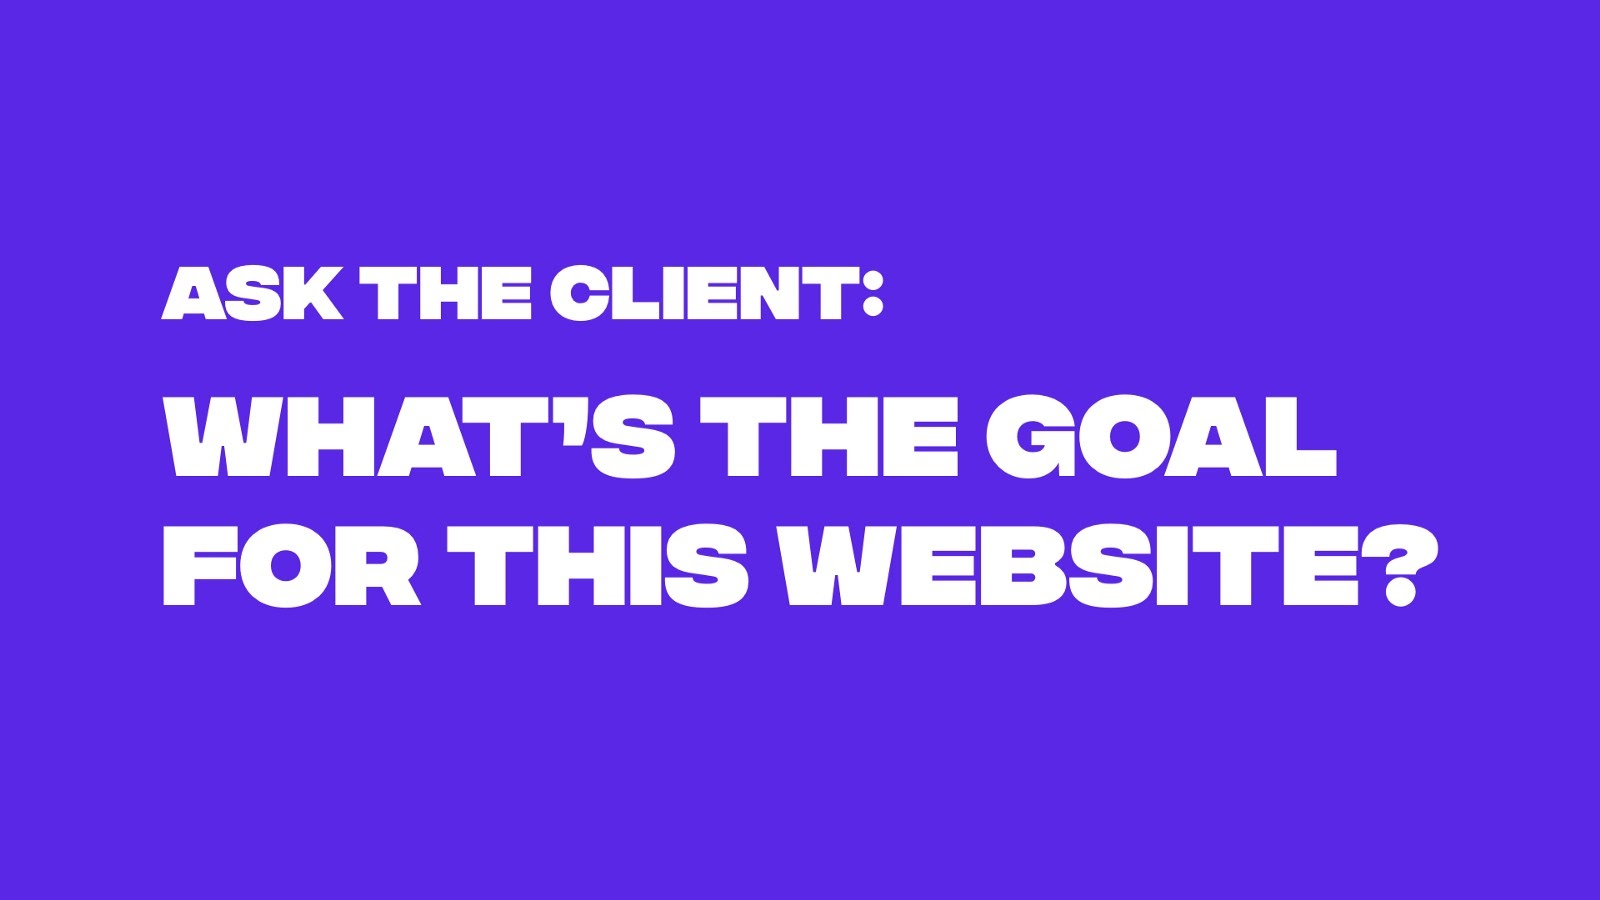 Ask the client, what's the goal for this website?